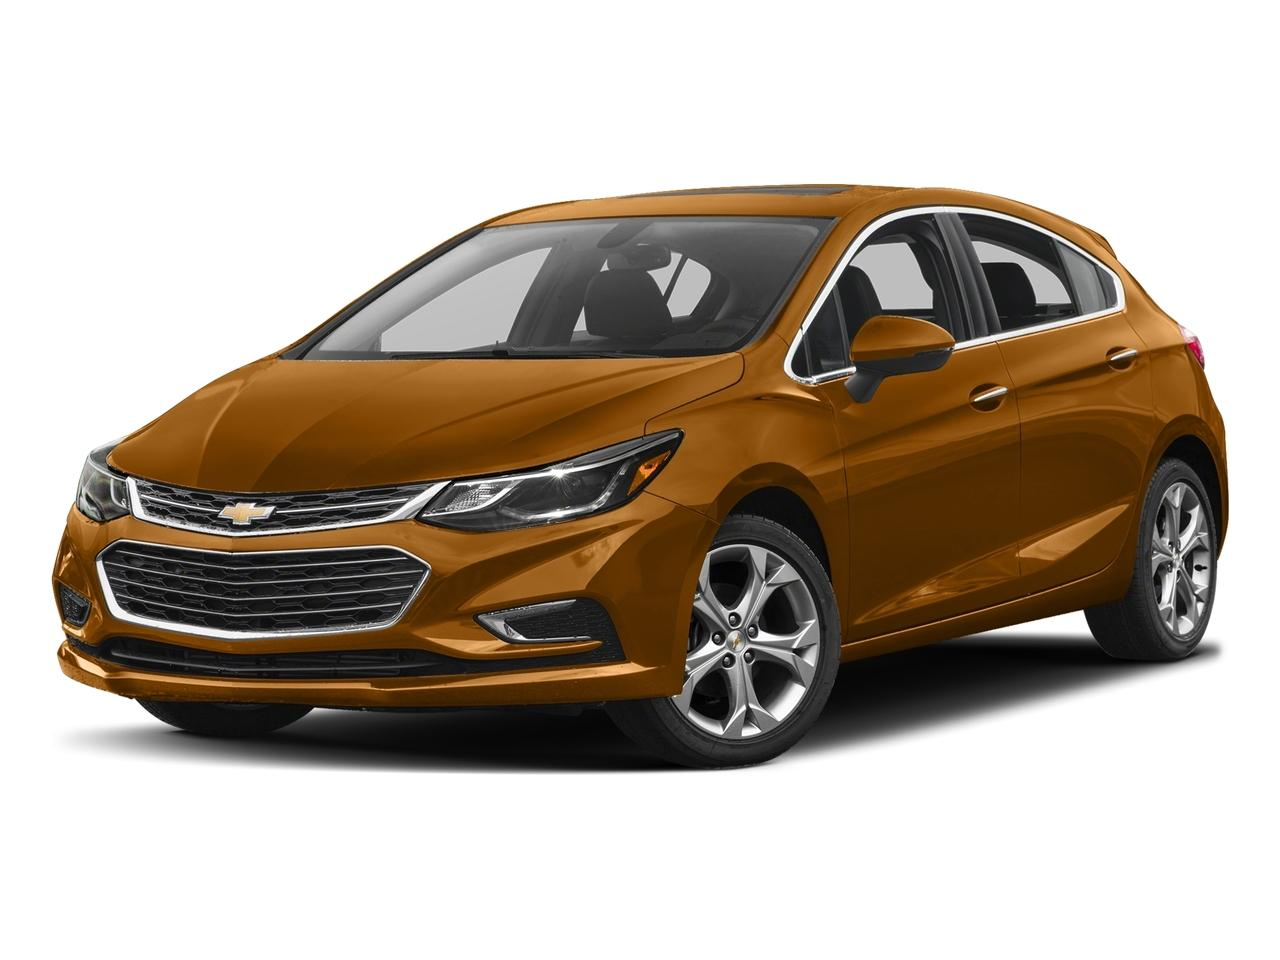 2017 Chevrolet Cruze Vehicle Photo in Hardwick, VT 05843